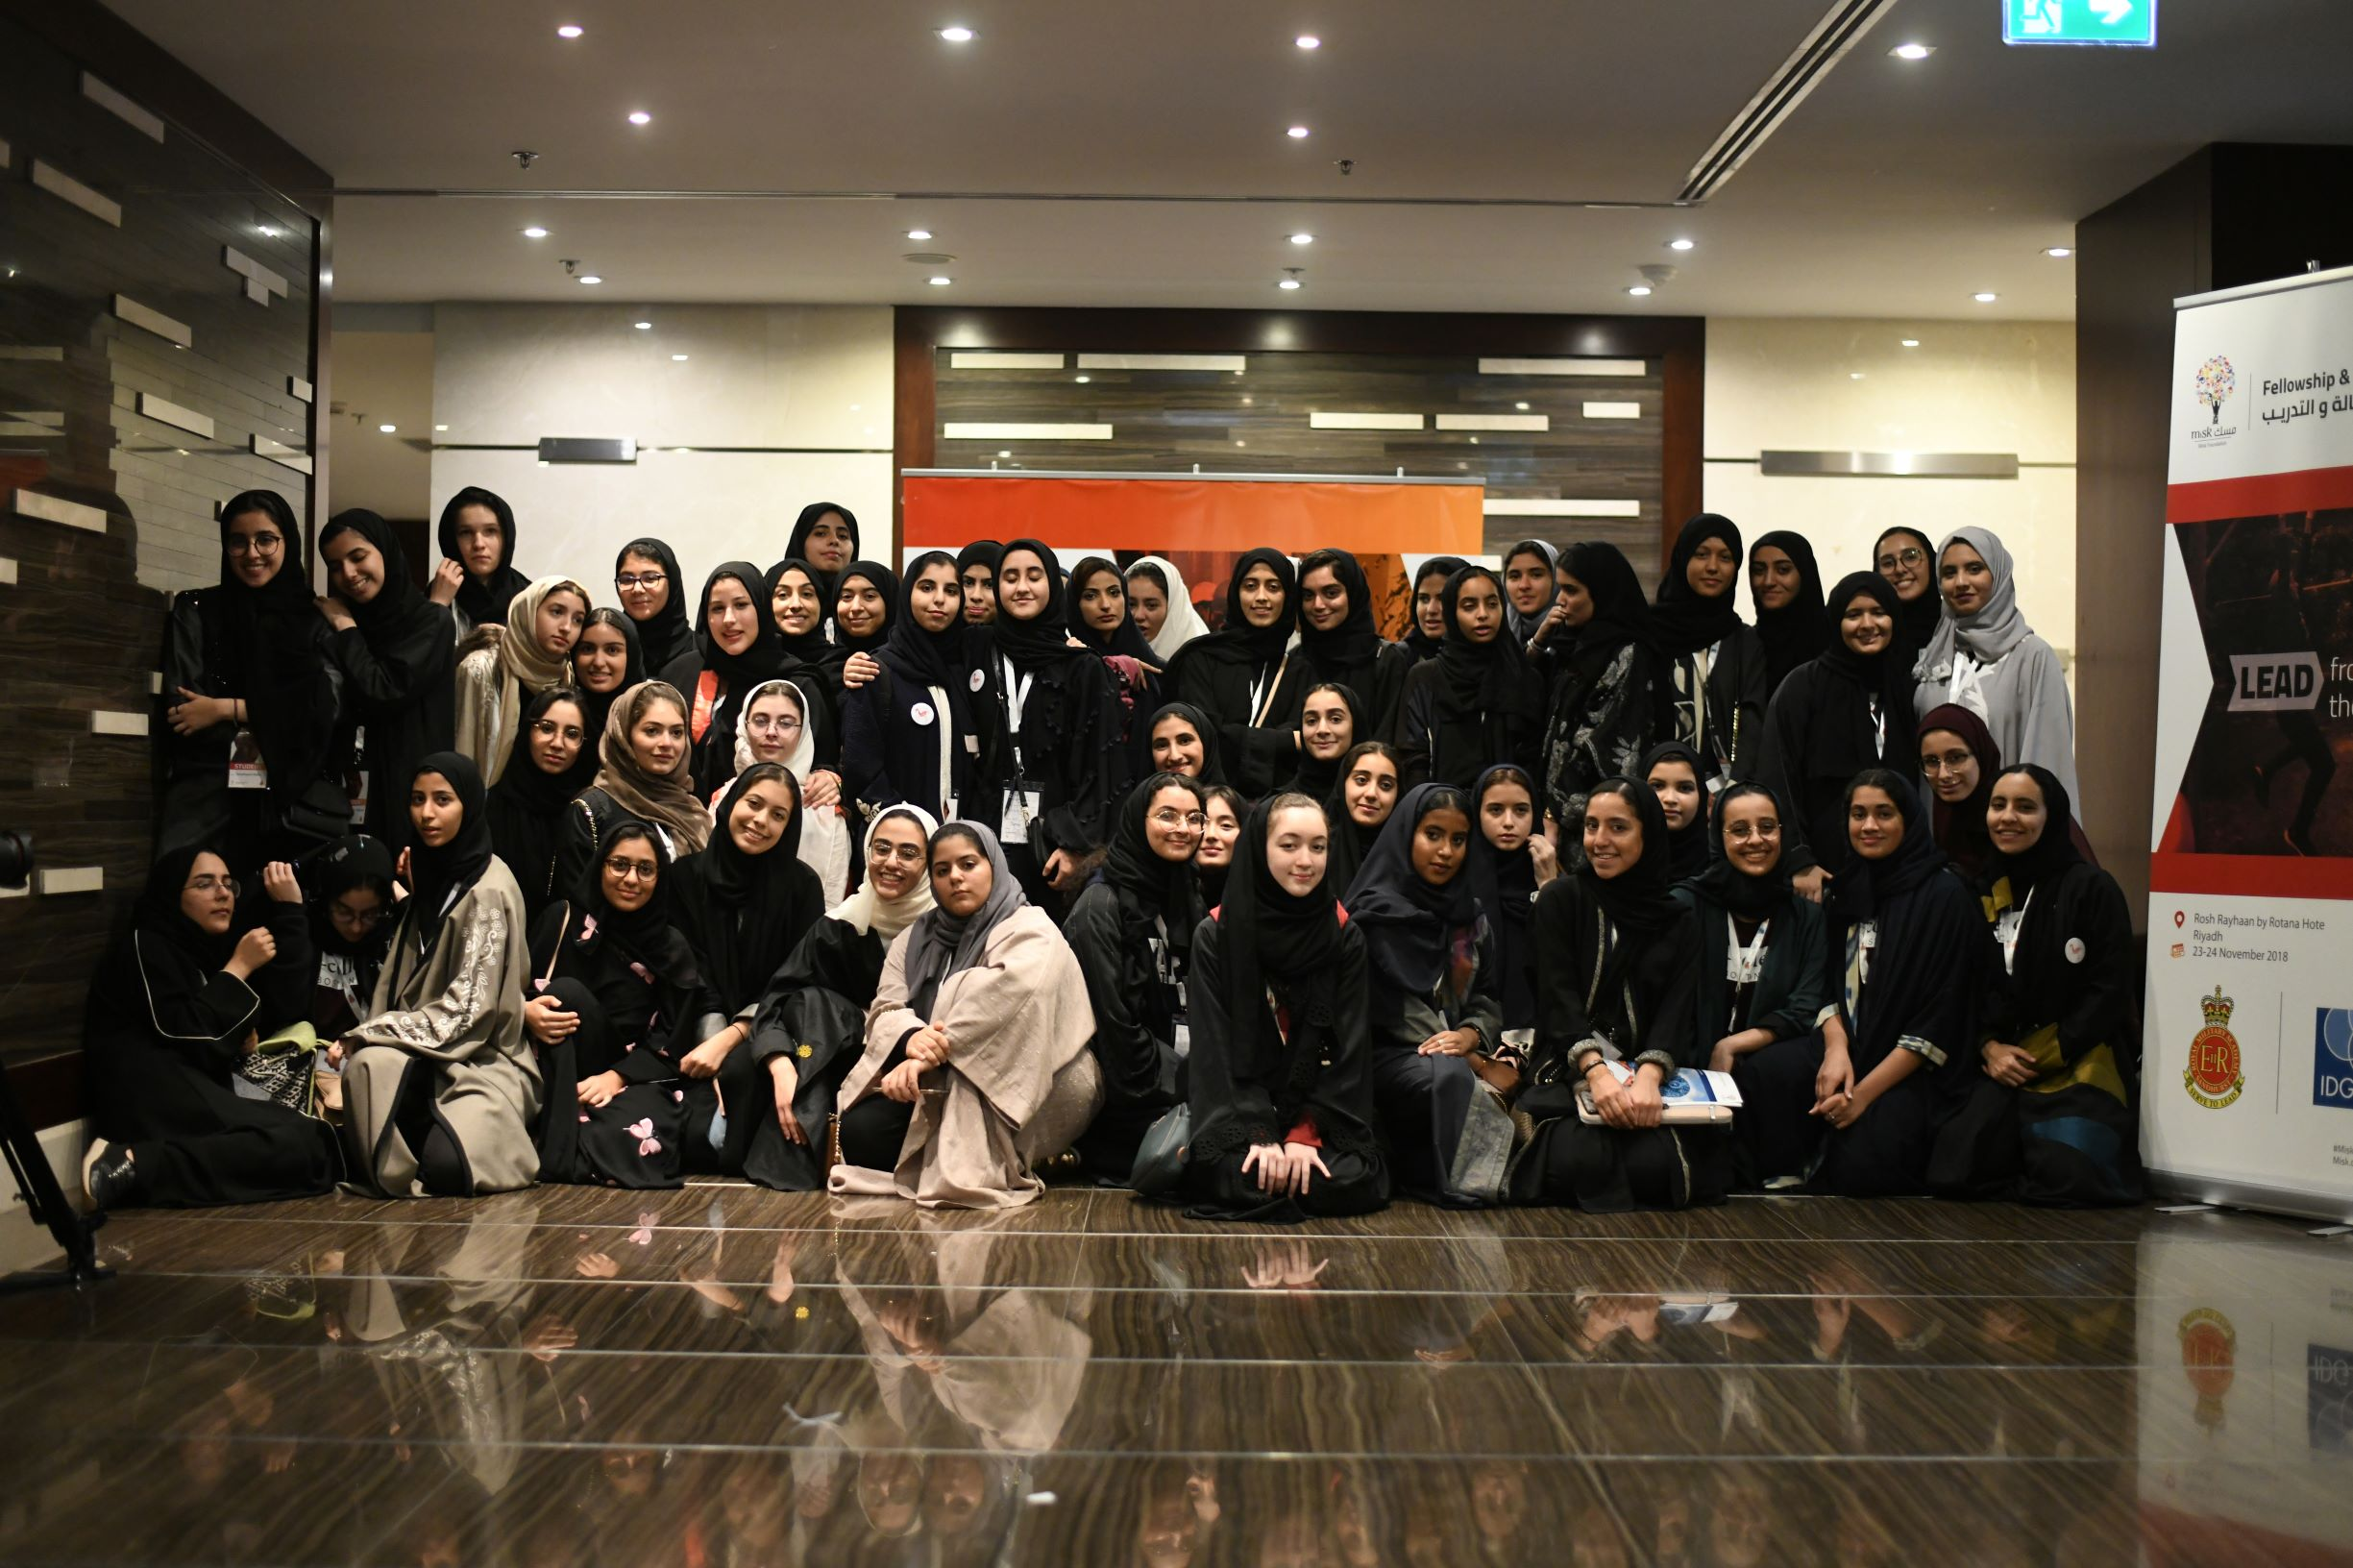 Misk Foundation Launches a Creative College Prep Program in Riyadh